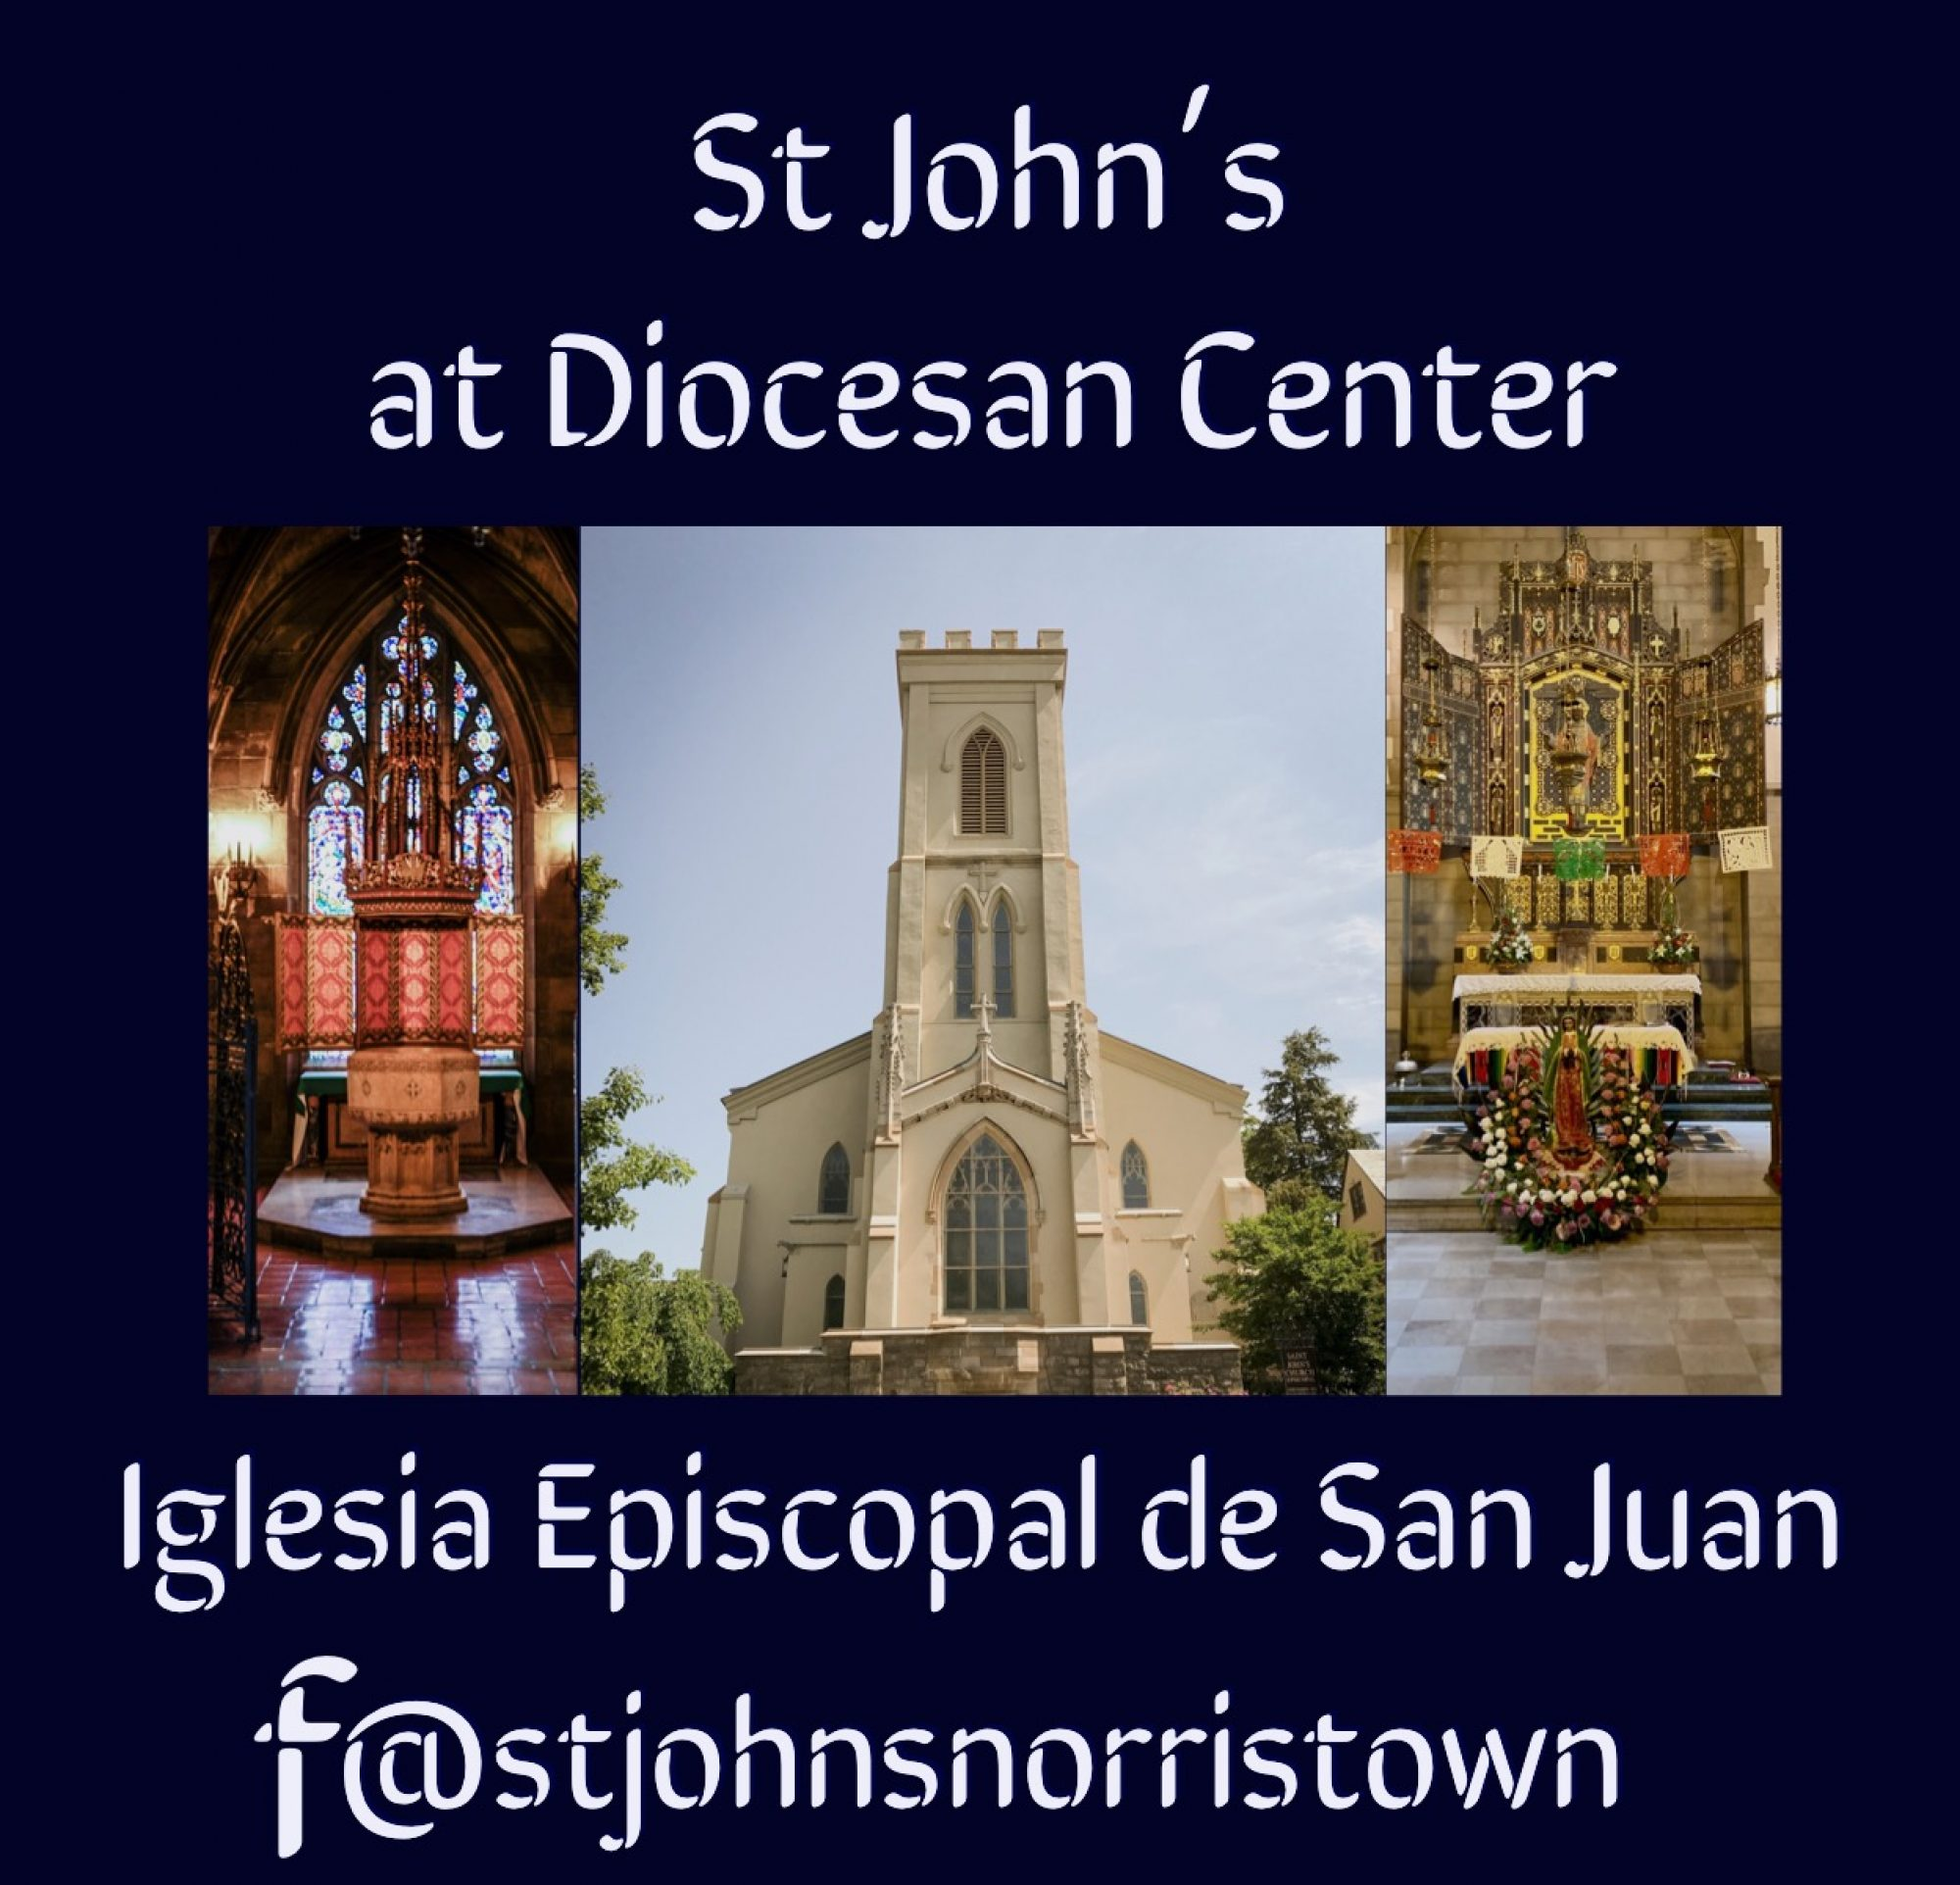 St Johns at Diocesan Center